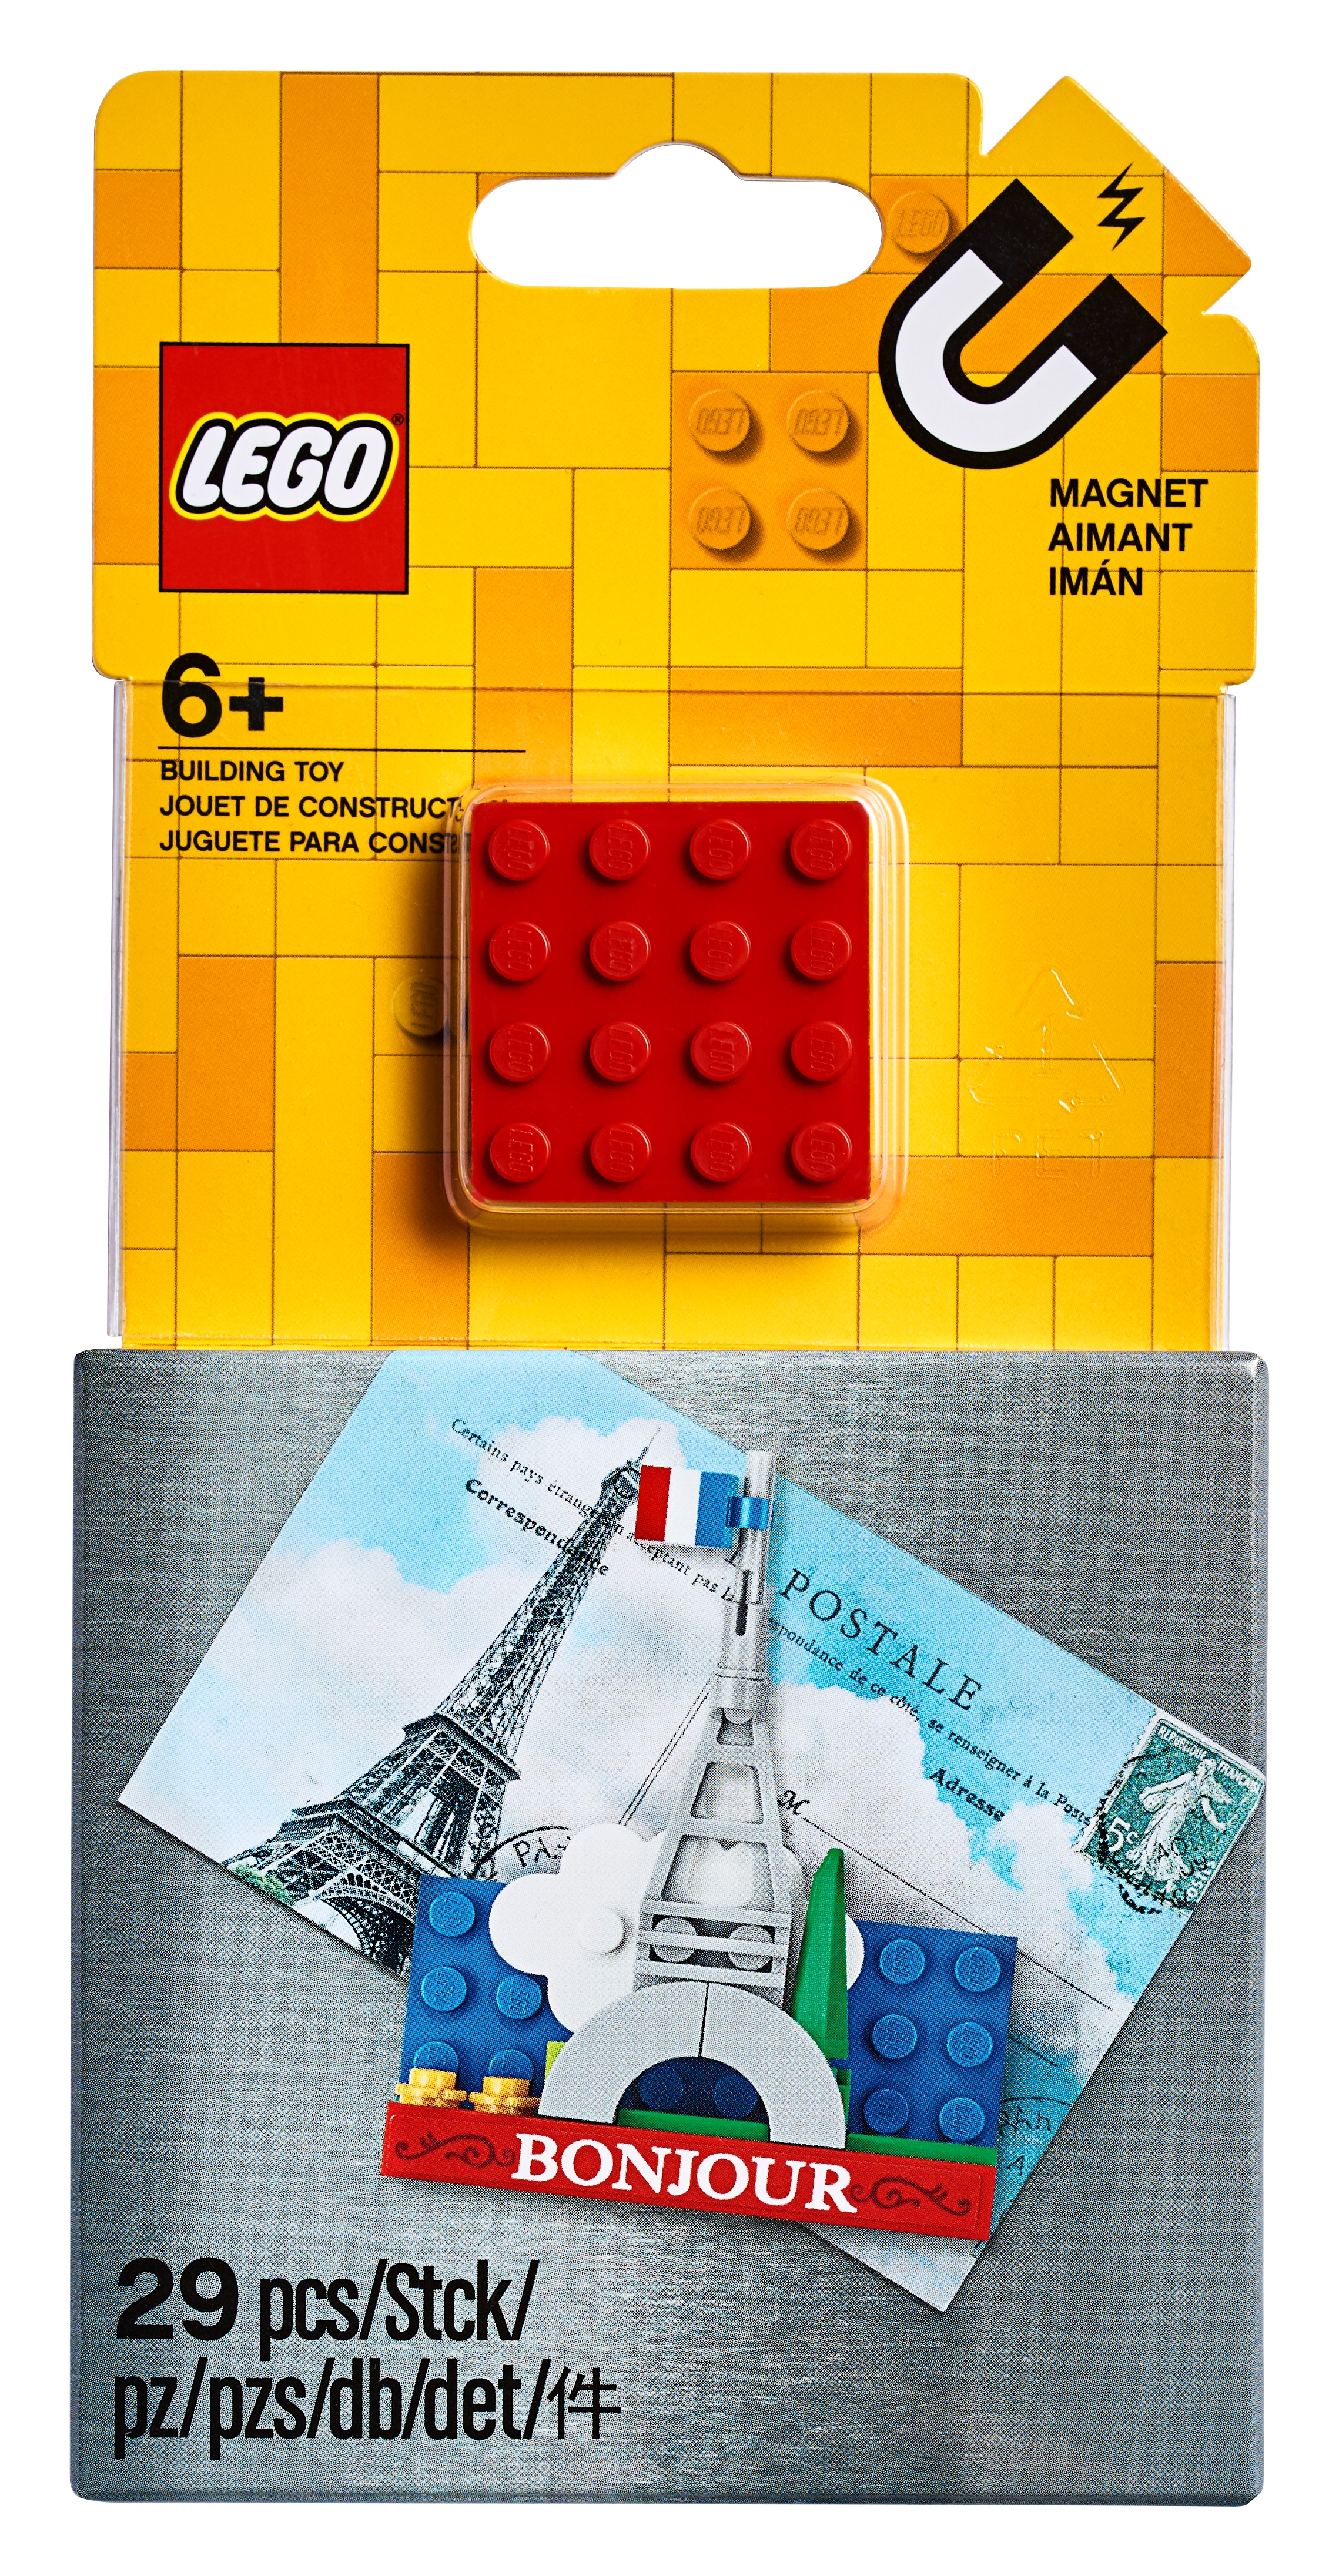 Eiffel Tower Magnet Build 854011 Miscellaneous Buy Online At The Official Lego Shop Us